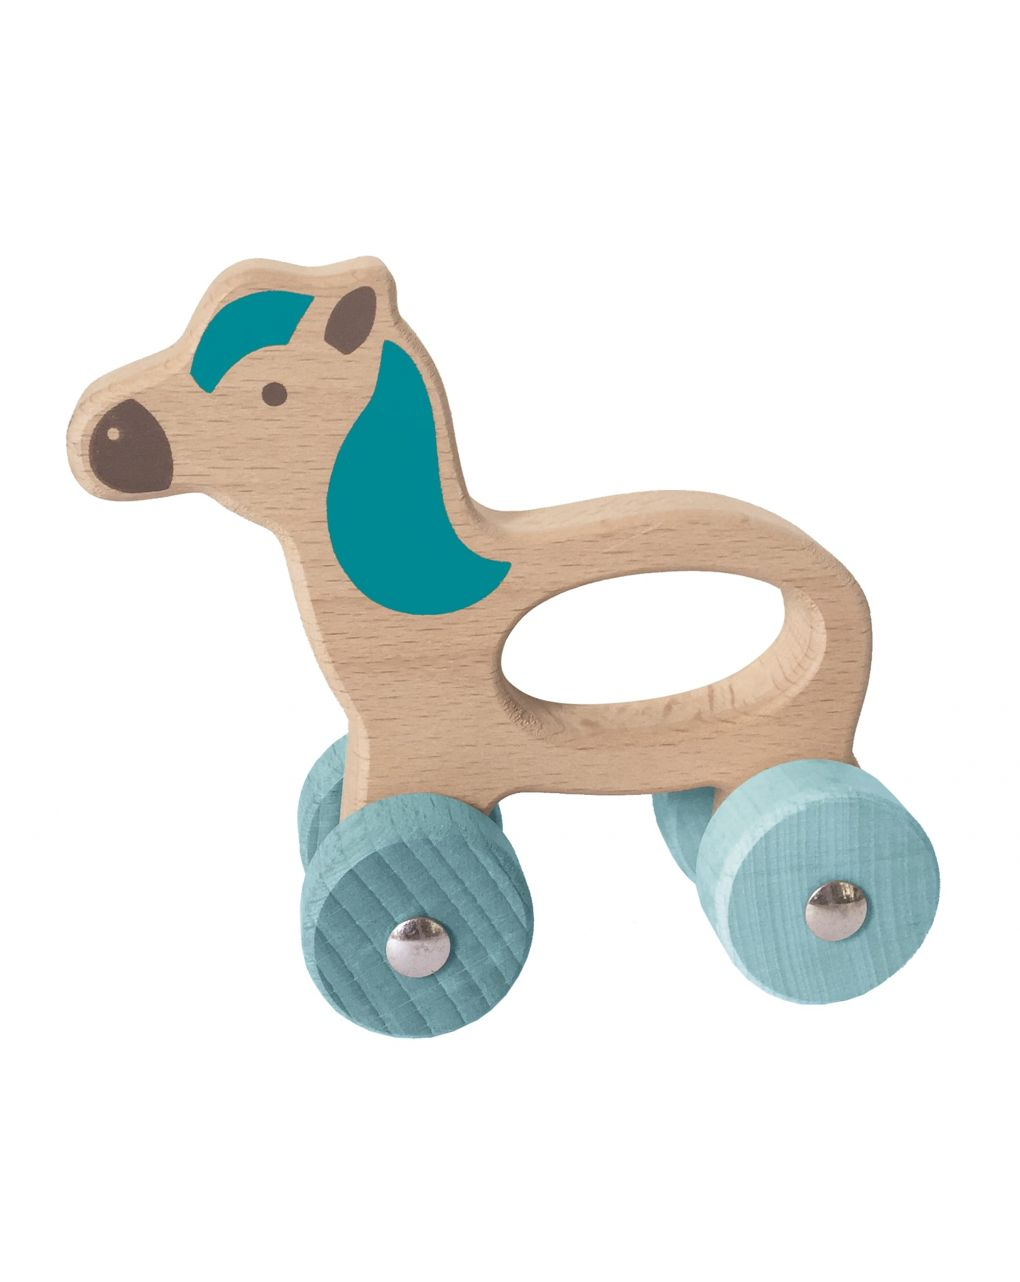 Wood n play - animali in legno con ruote - Wood'N'Play